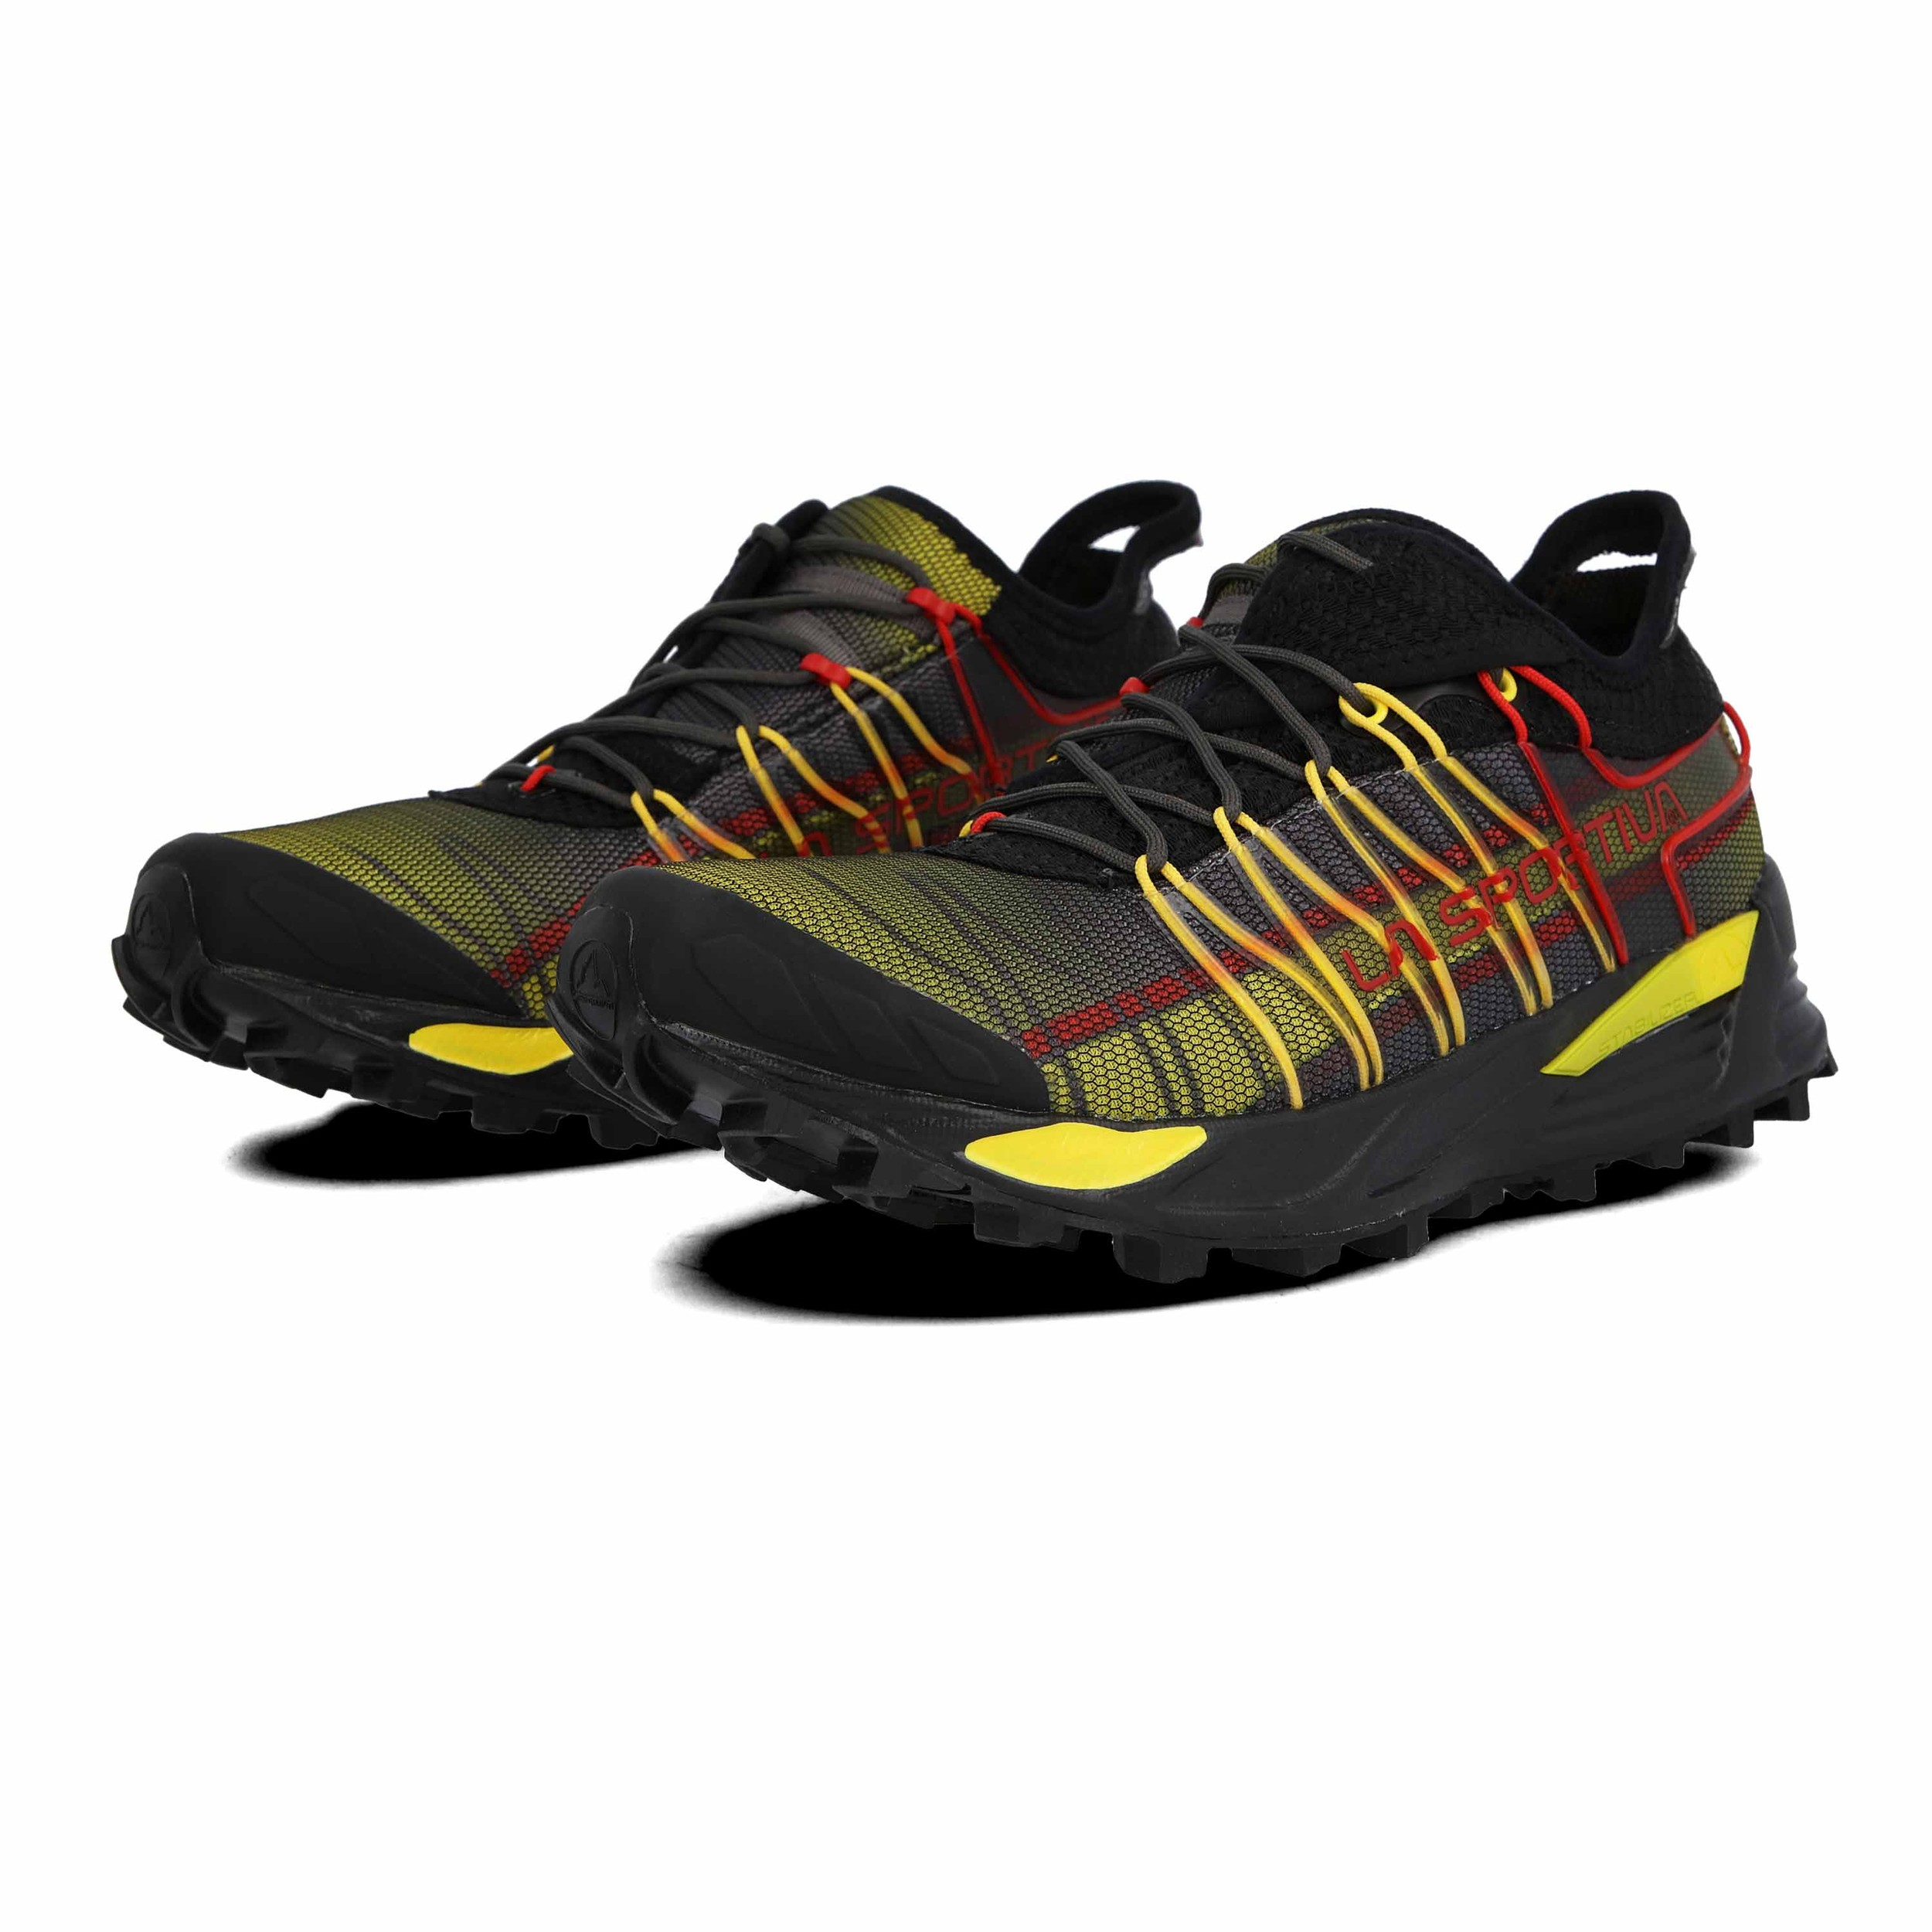 La Sportiva Mens Mutant Trail Running Shoes Trainers Black Orange Sports